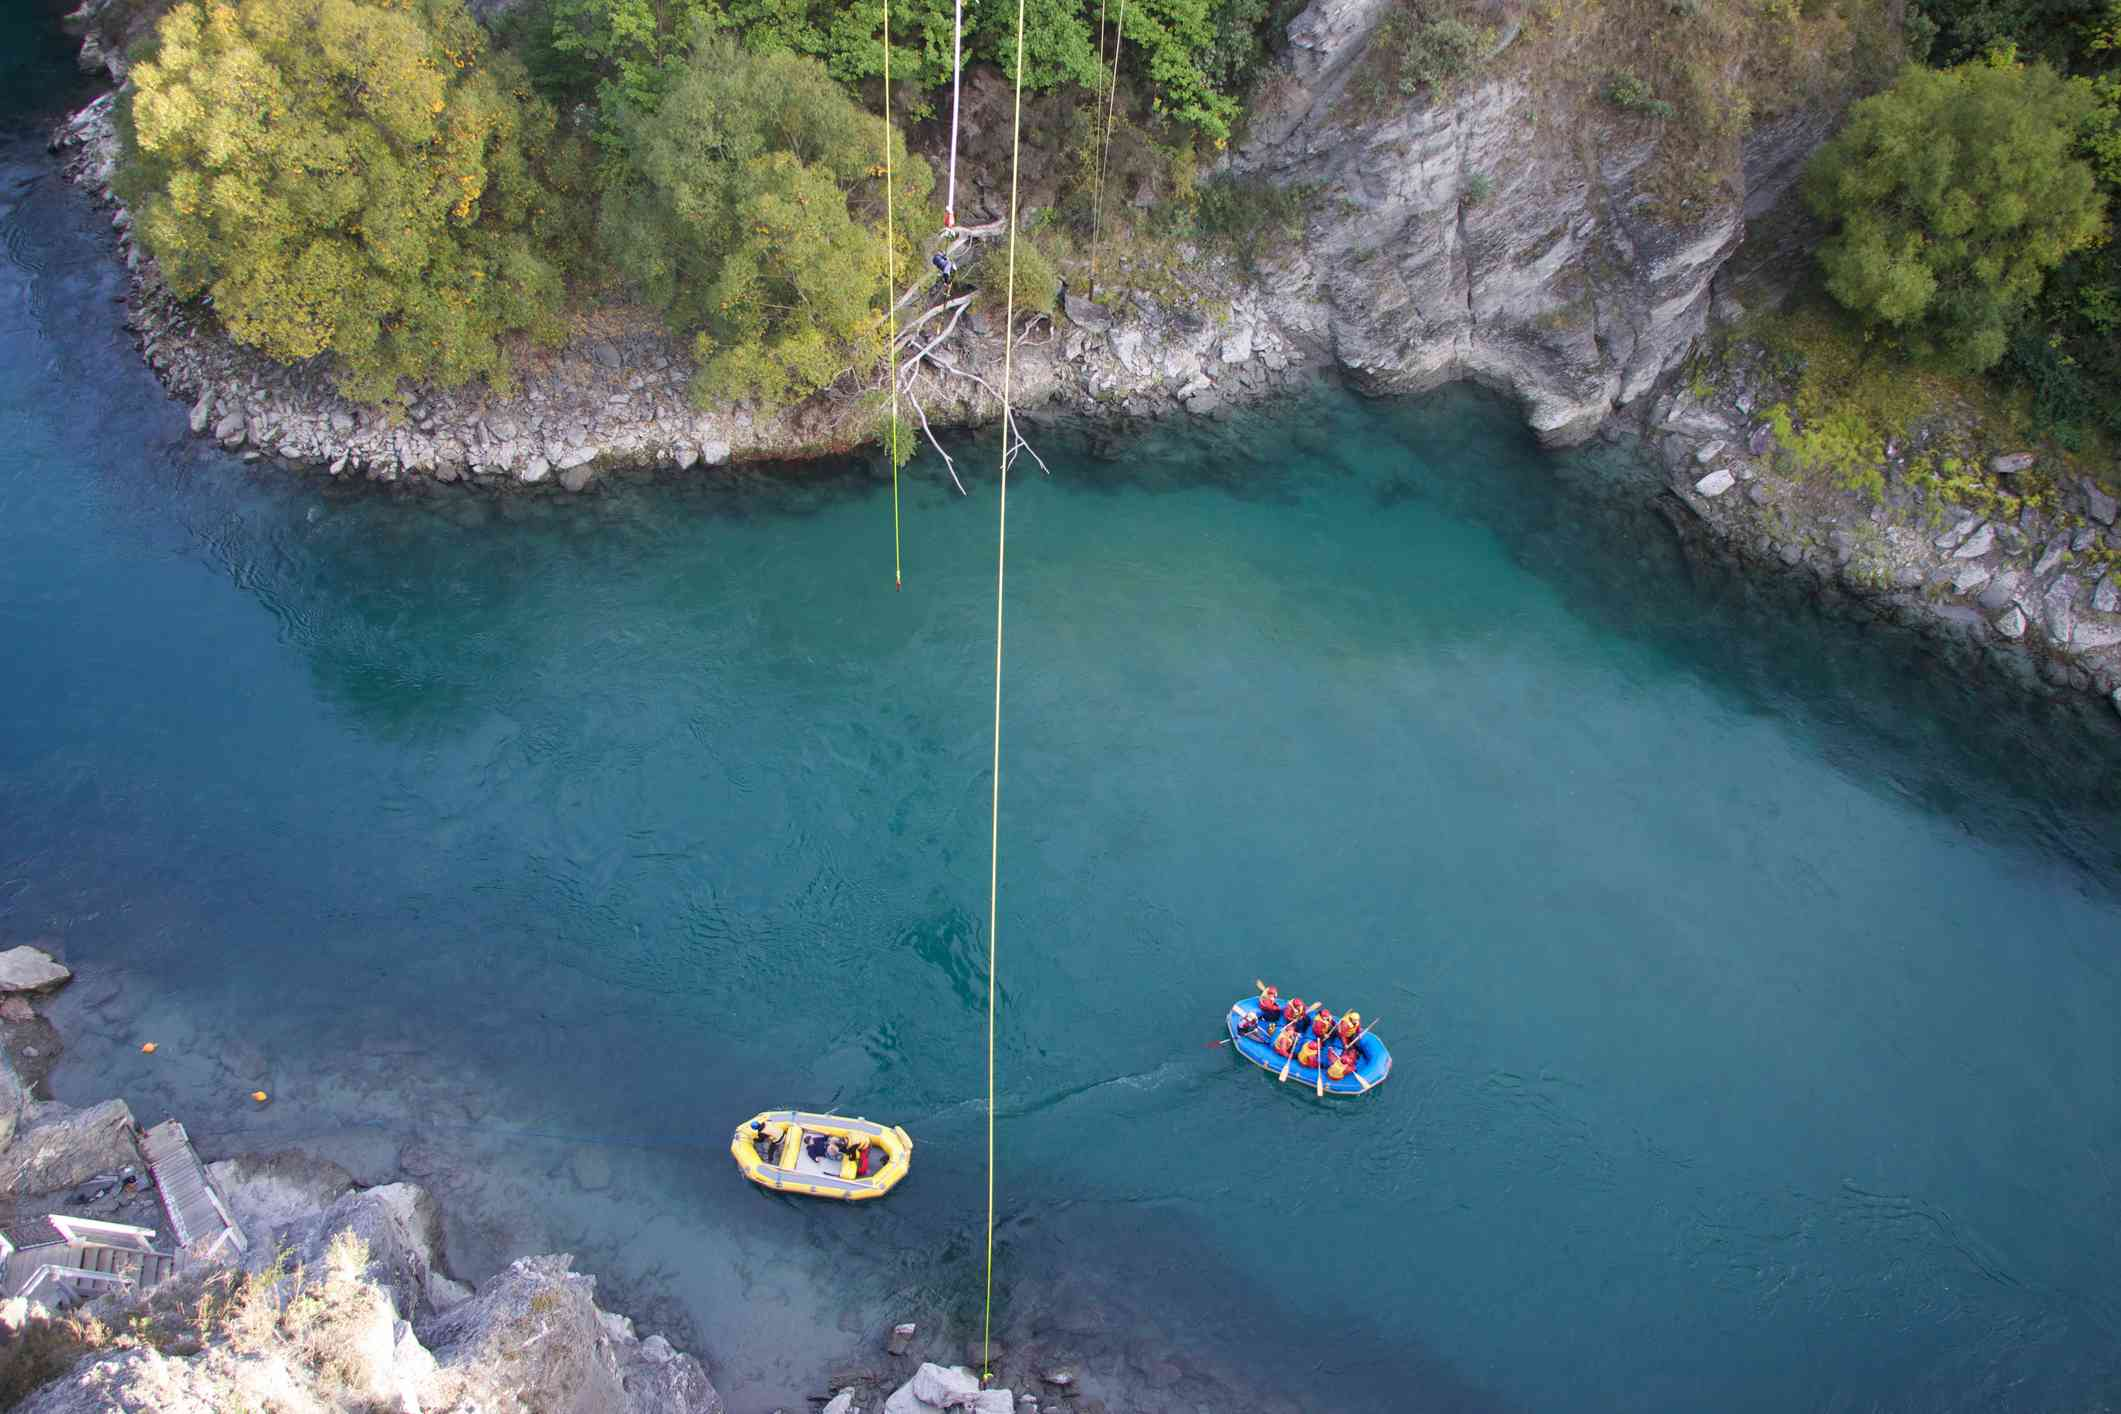 aerial shot of two rafts on a blue river in a canyon